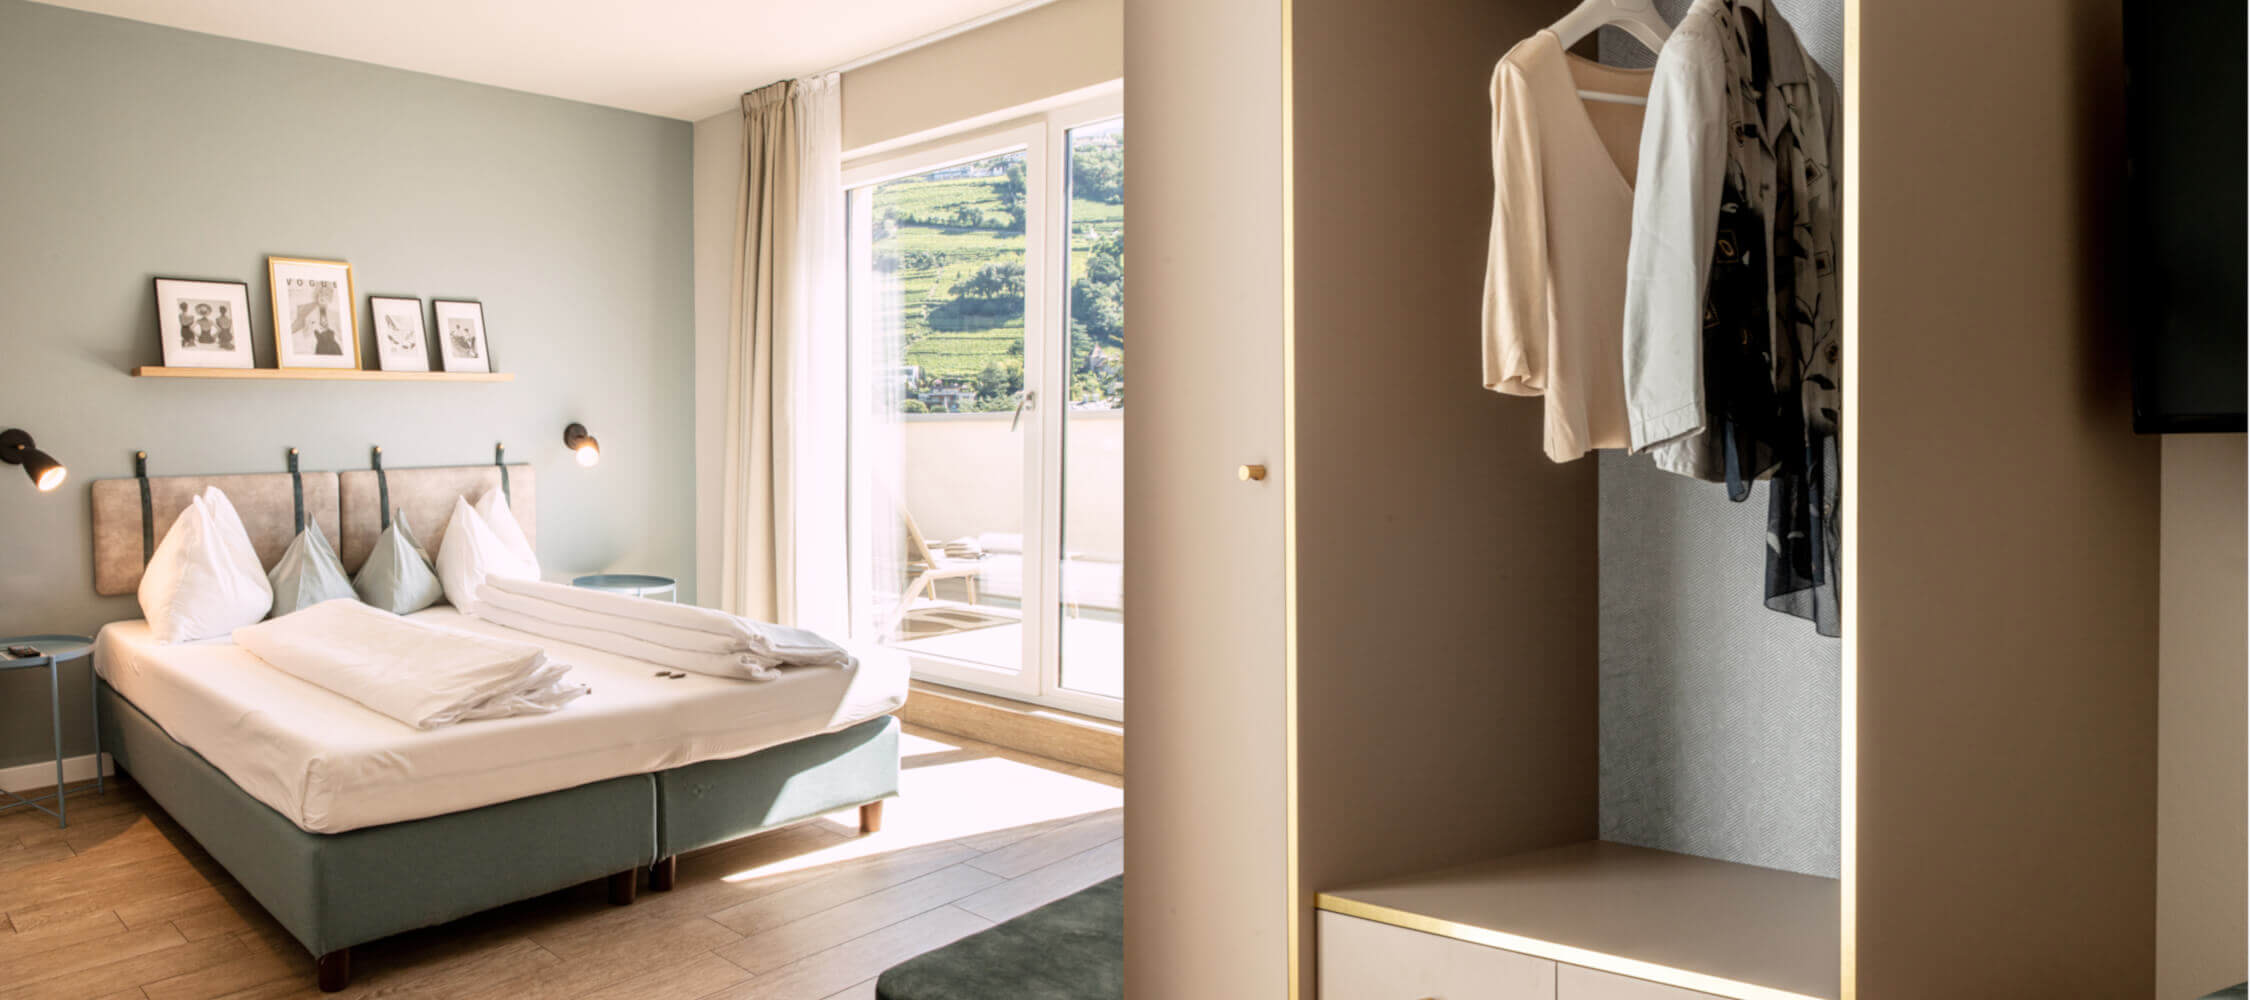 City_Hotel_Merano_Suite_Panoramic_Schlafzimmer_BeatricePilotto_3T1A1727+3T1A1733_2250x1000